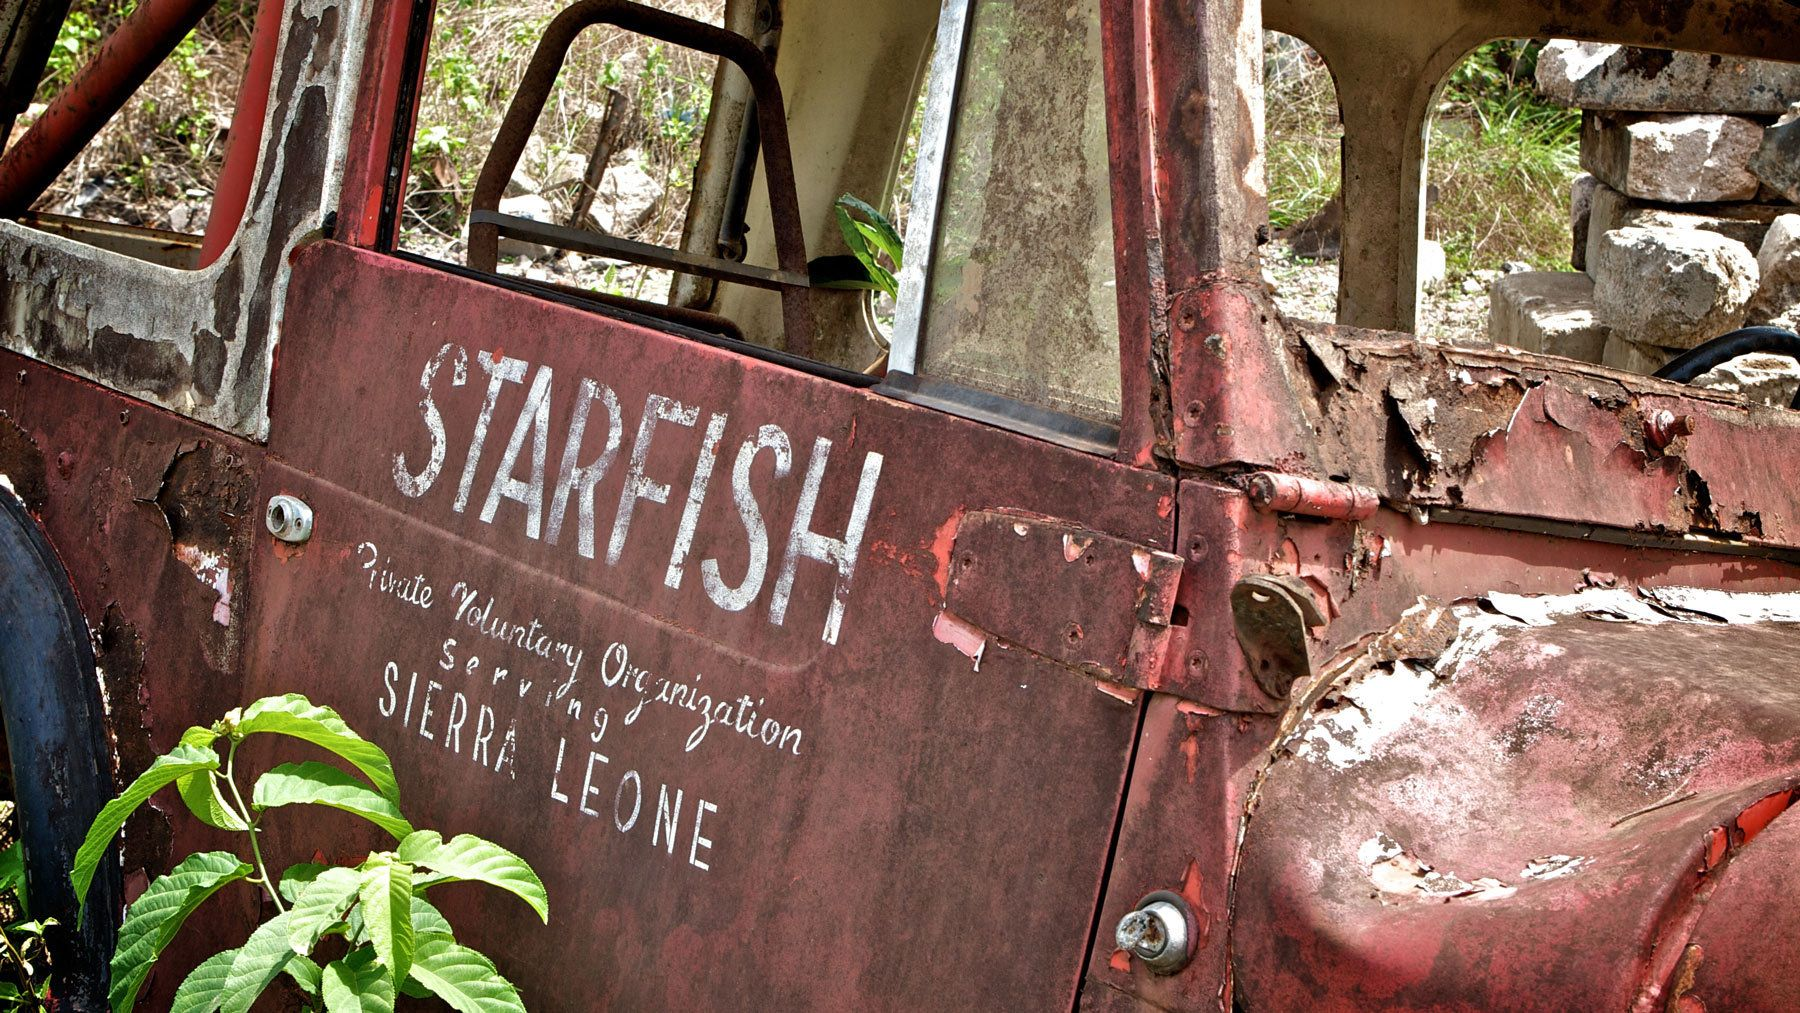 1abandoned_jeep_sierra_leone_starfish_tour.jpg